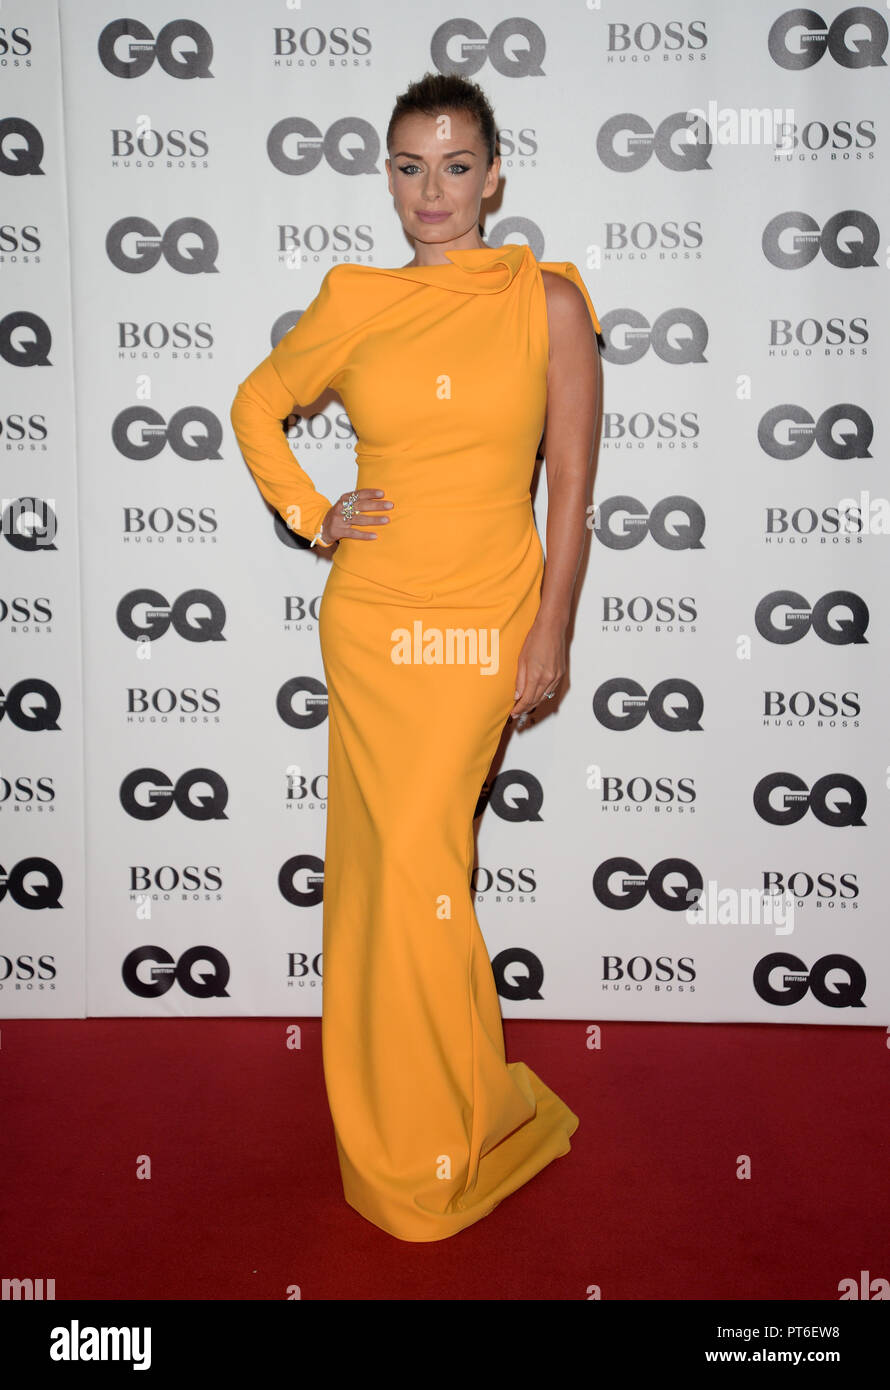 GQ Men Of The Year Awards at The Tate Modern  Featuring: Katherine Jenkins Where: London, United Kingdom When: 05 Sep 2018 Credit: Tony Oudot/WENN - Stock Image